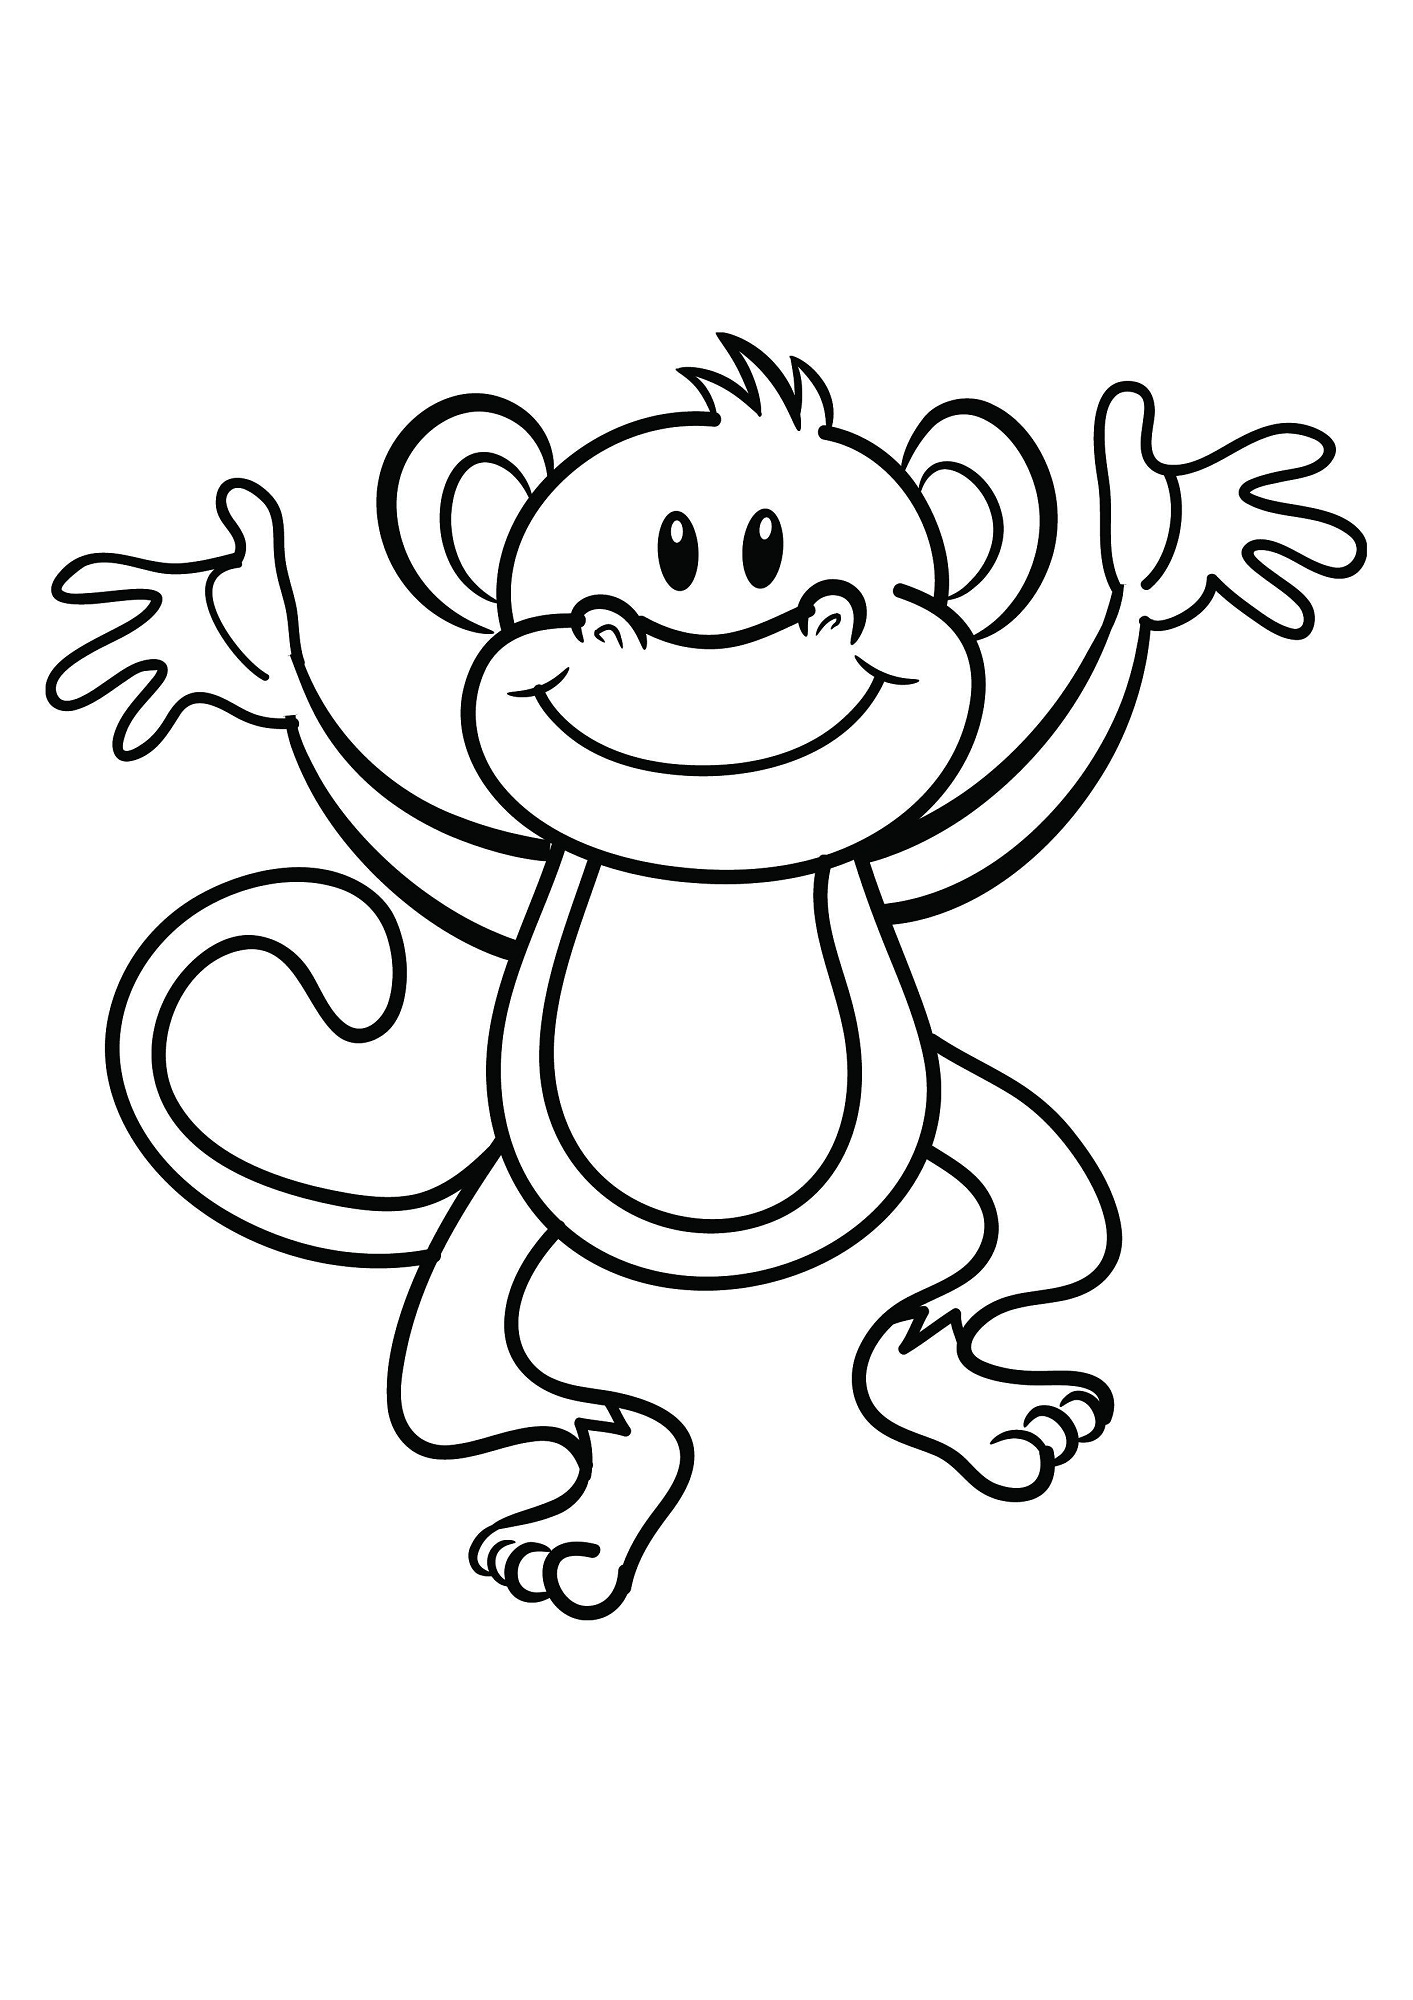 Coloring pages of monkeys printable activity shelter for Coloring pages of monkey